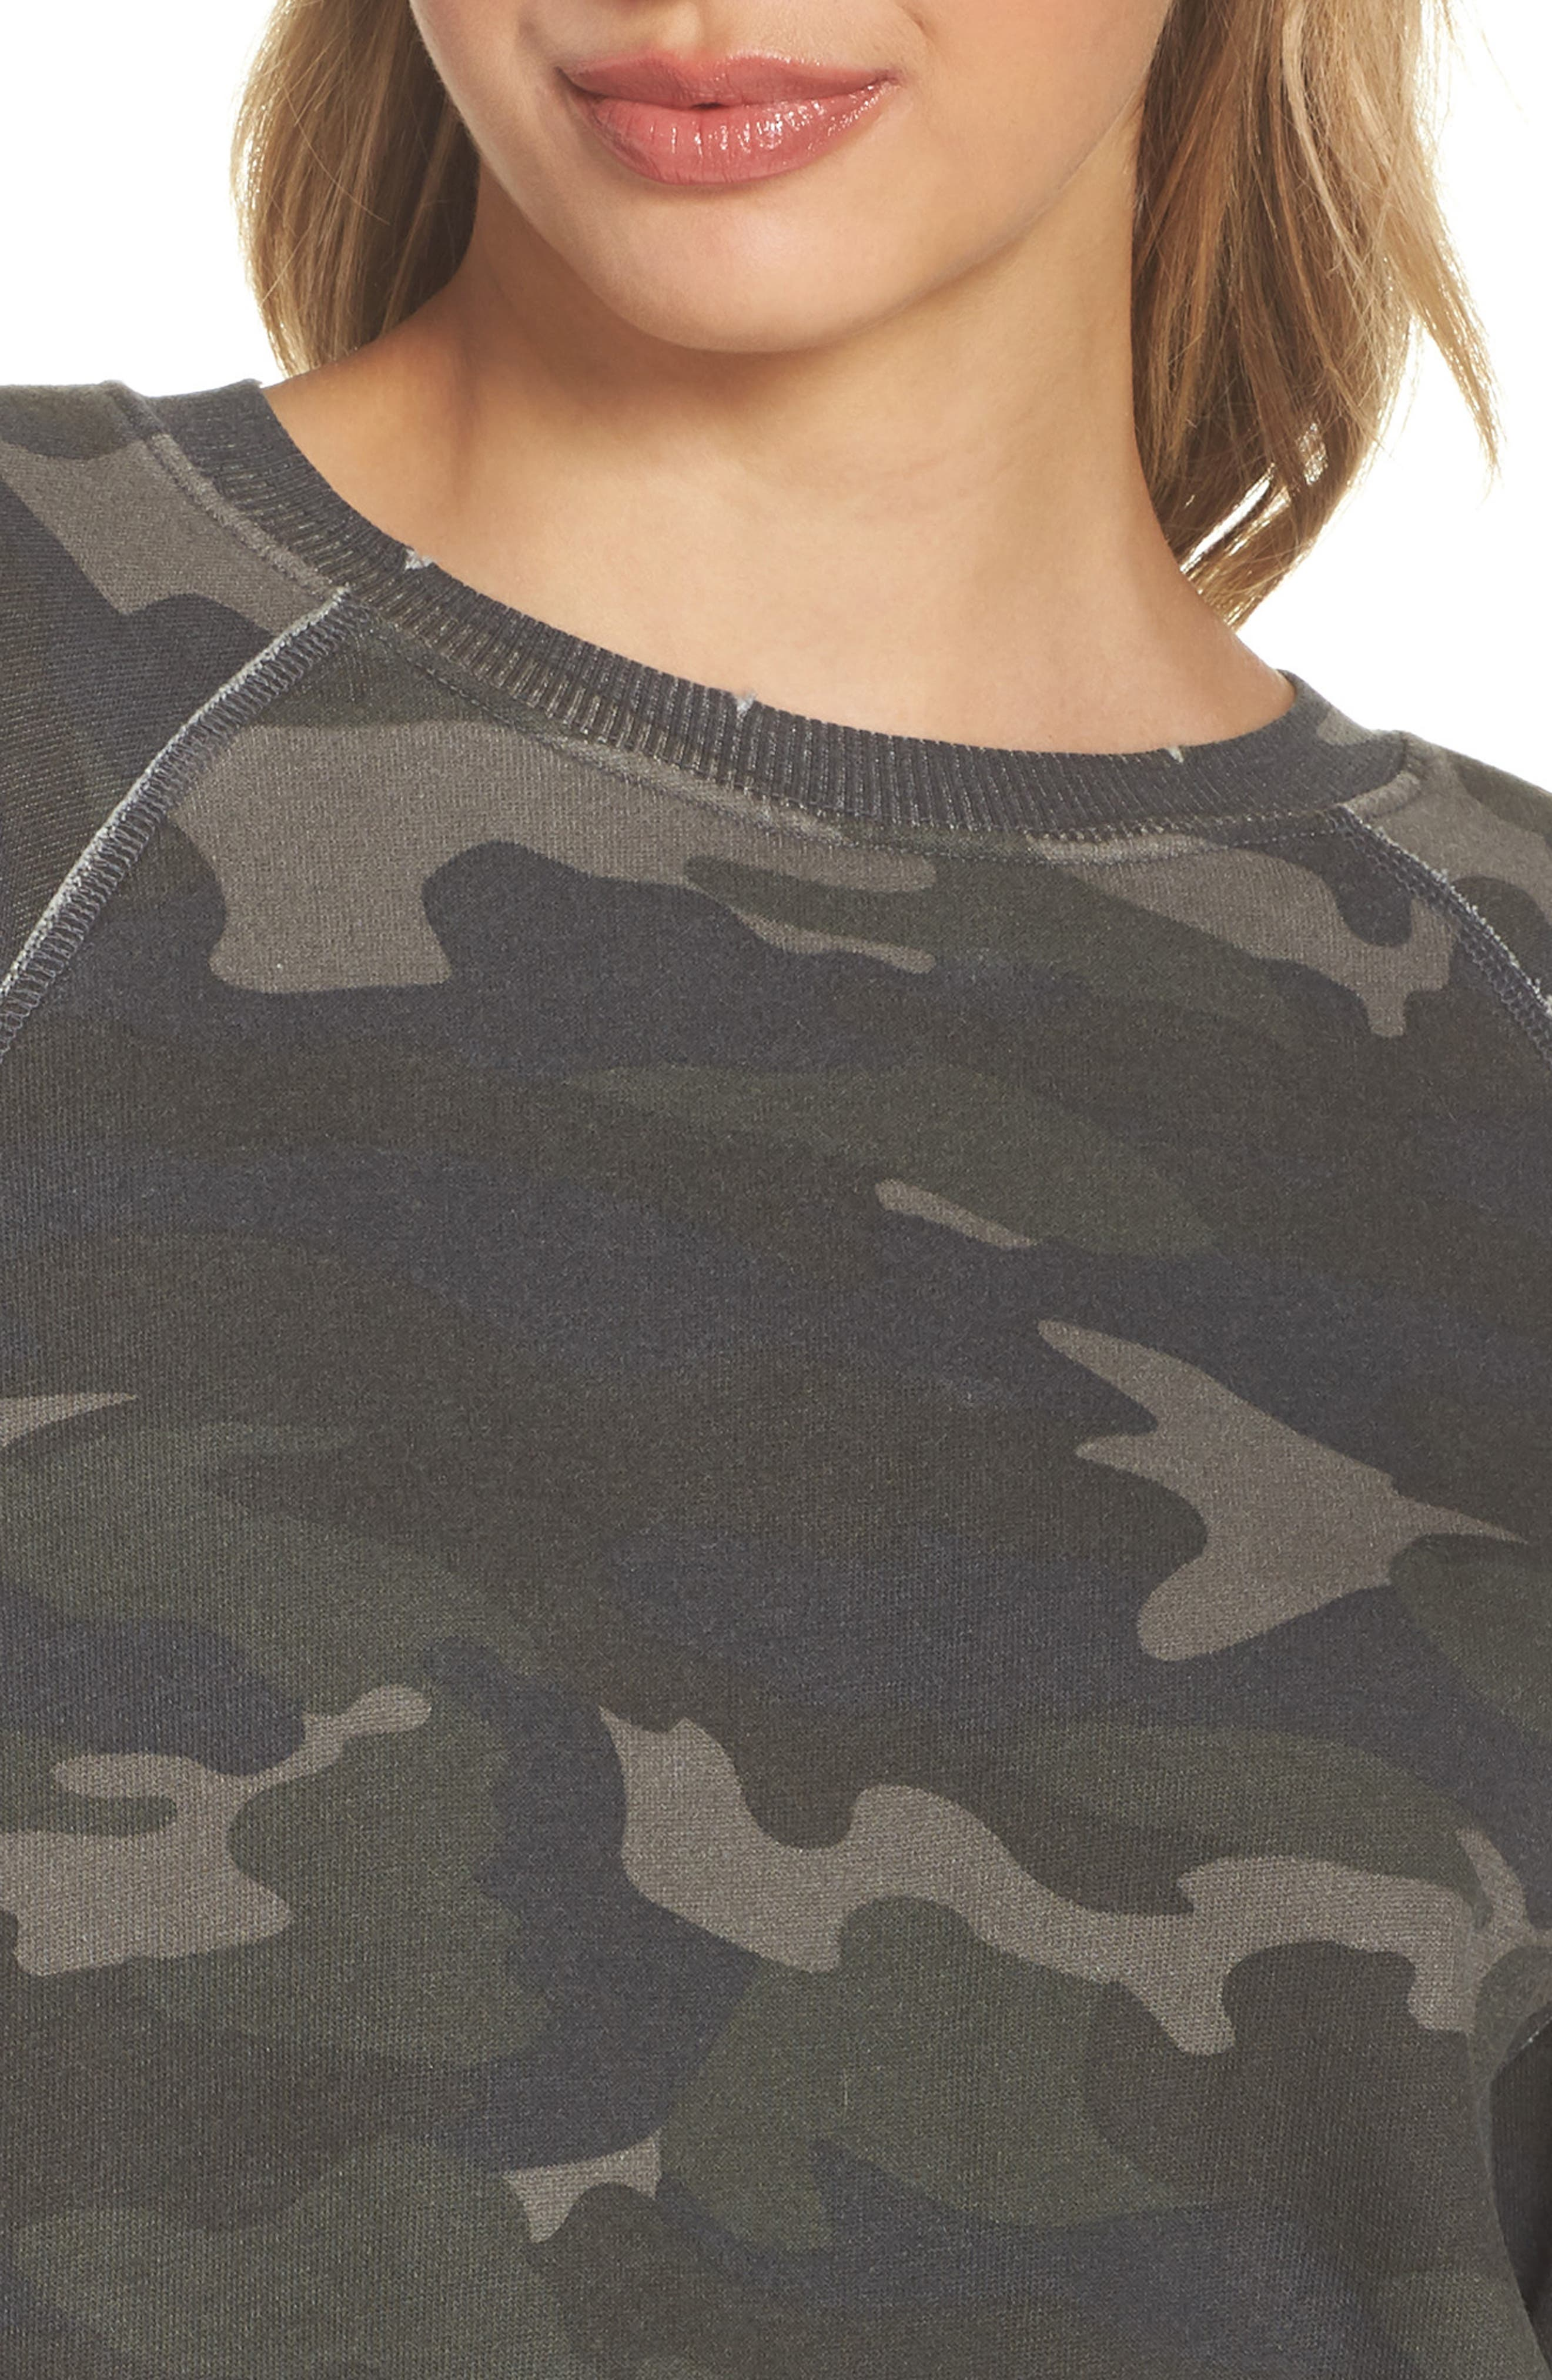 Camo Oversize Sweatshirt,                             Alternate thumbnail 4, color,                             CAMO